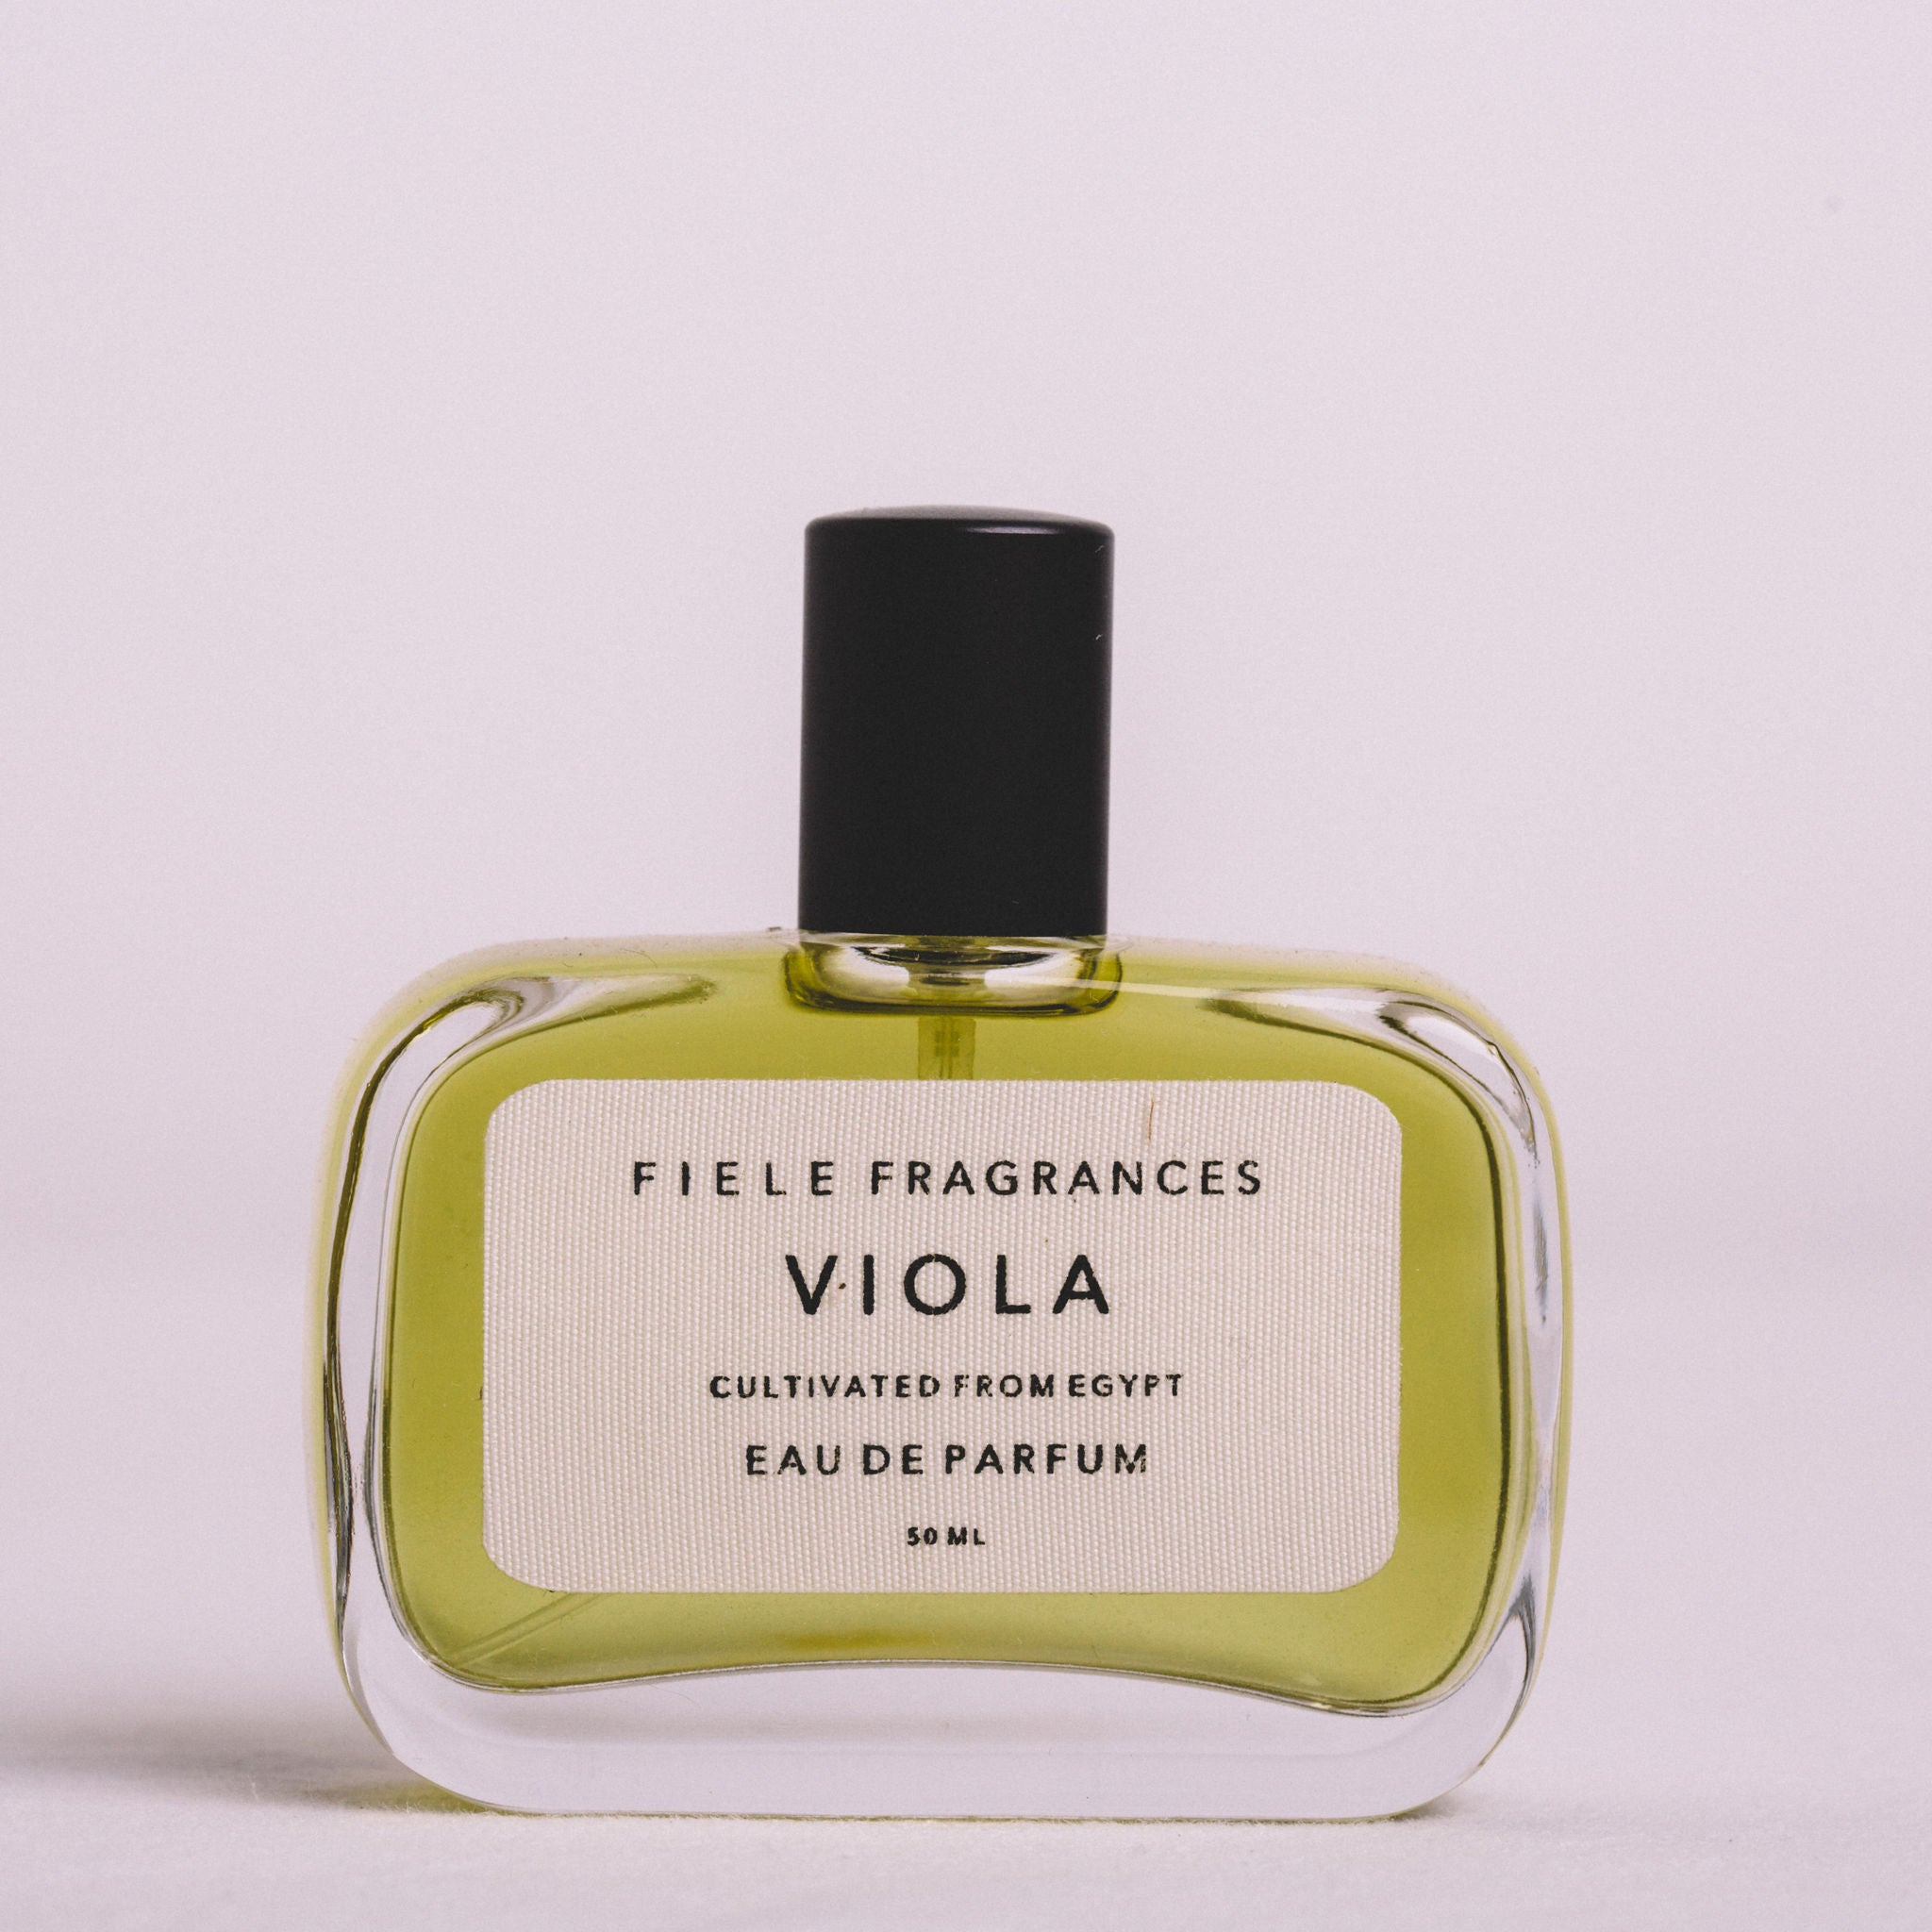 FIELE FRAGRANCE